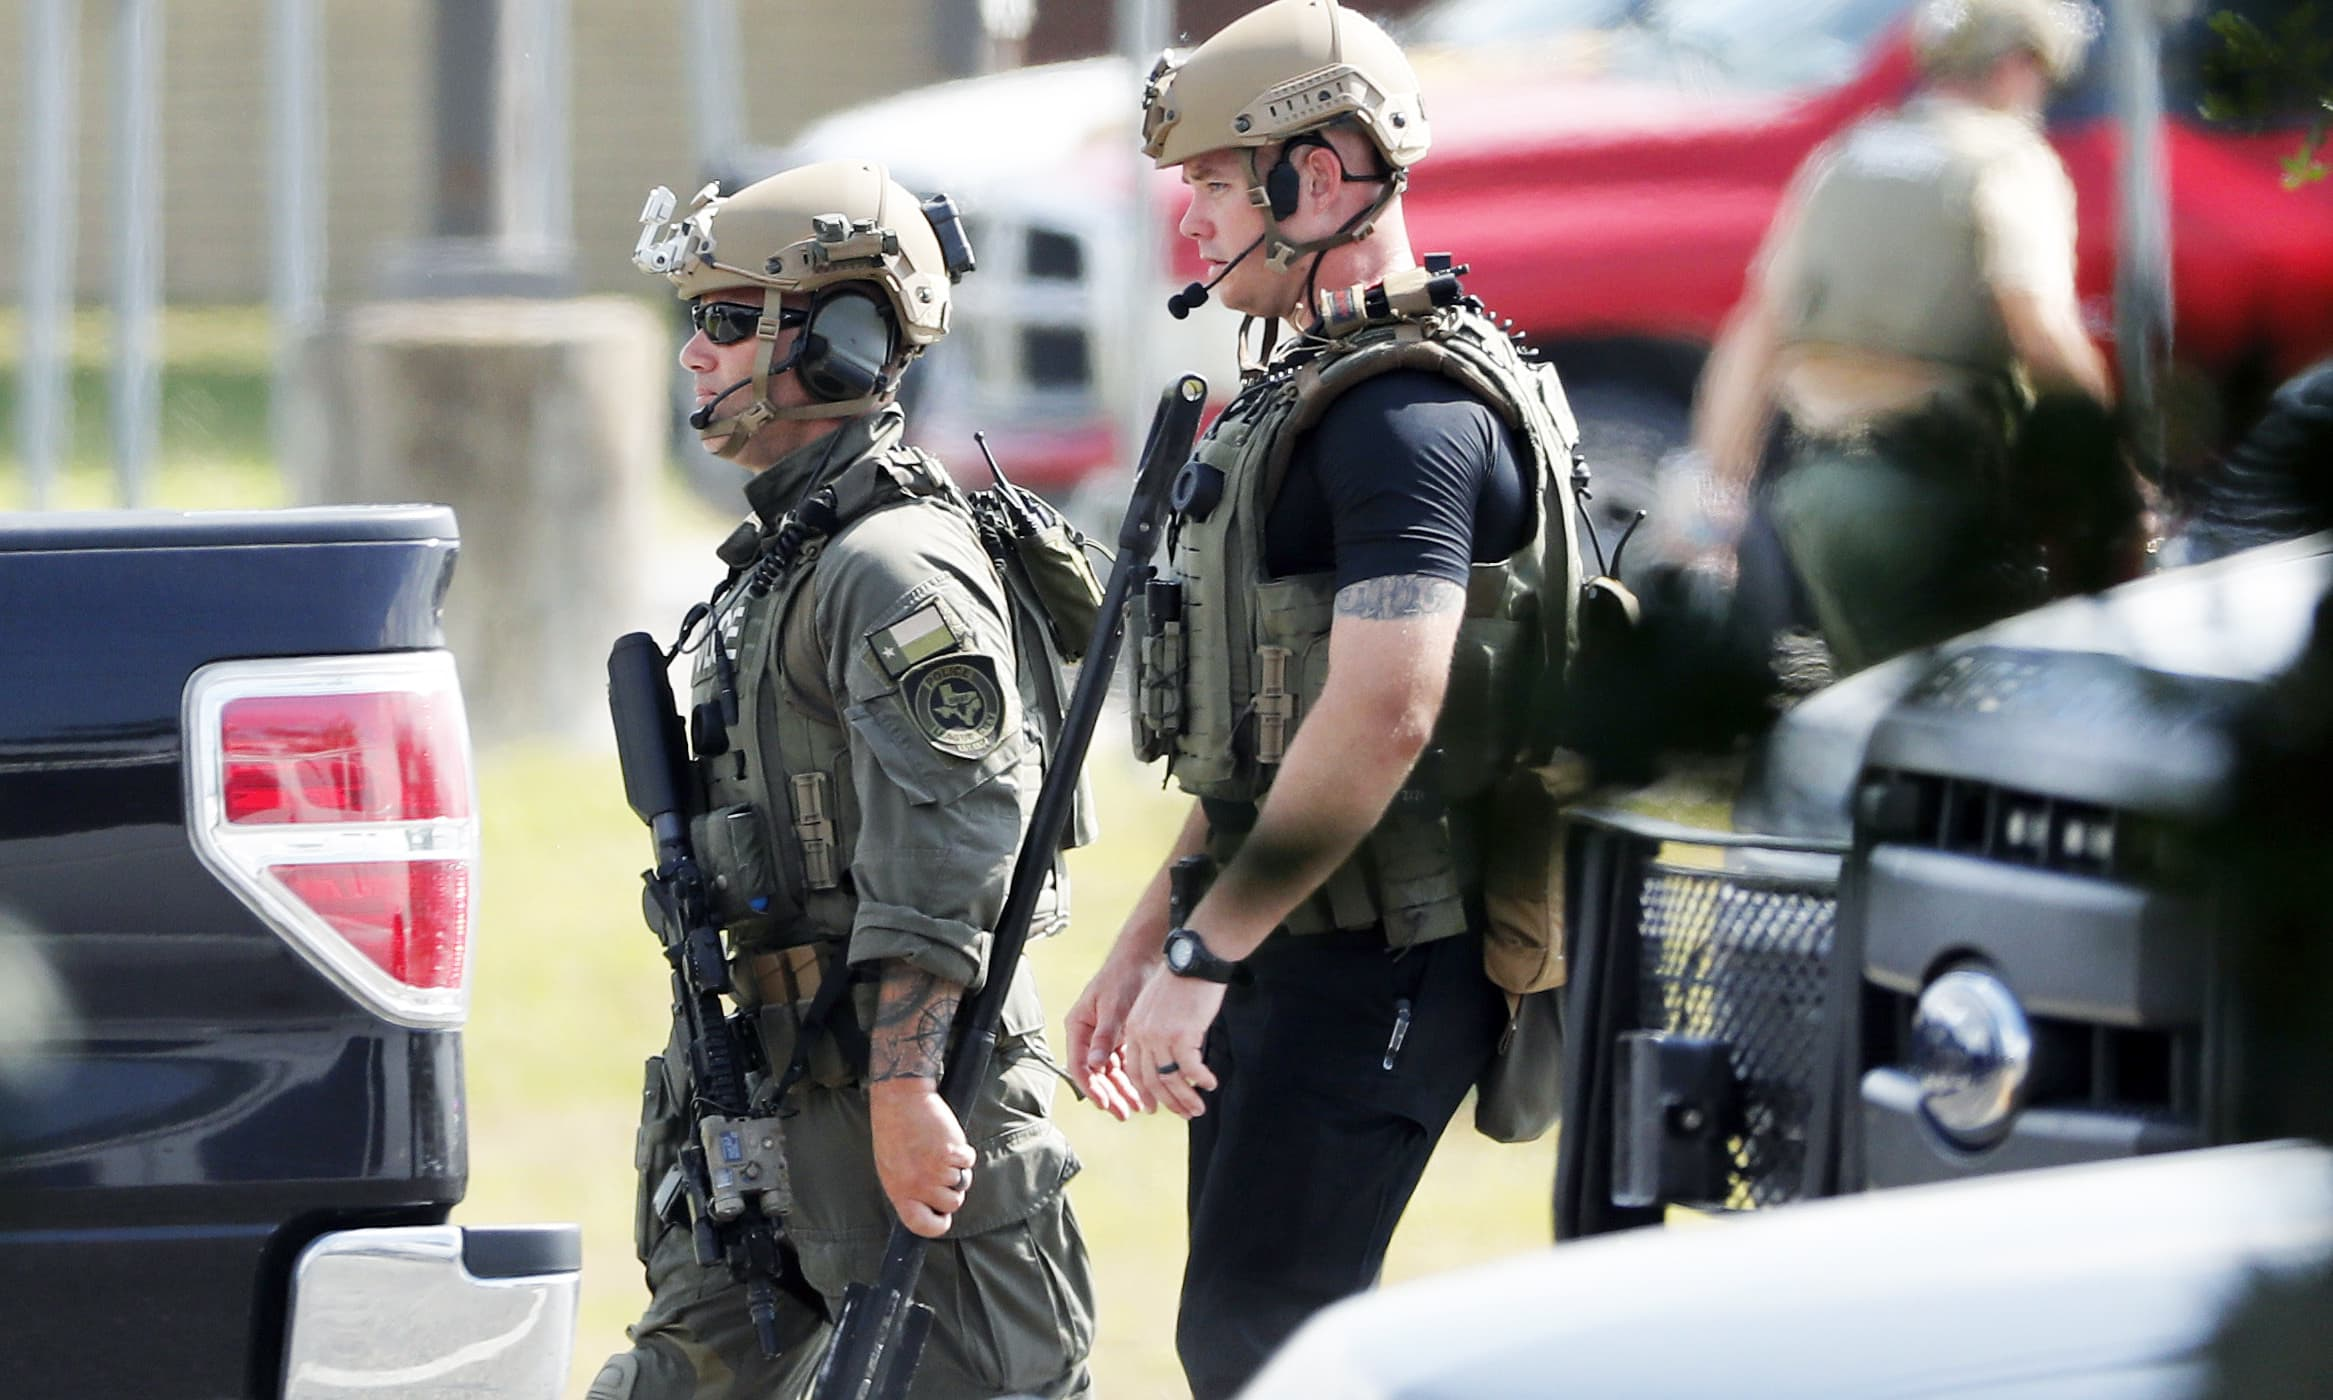 Police officers move through the scene at Santa Fe High School. —AP